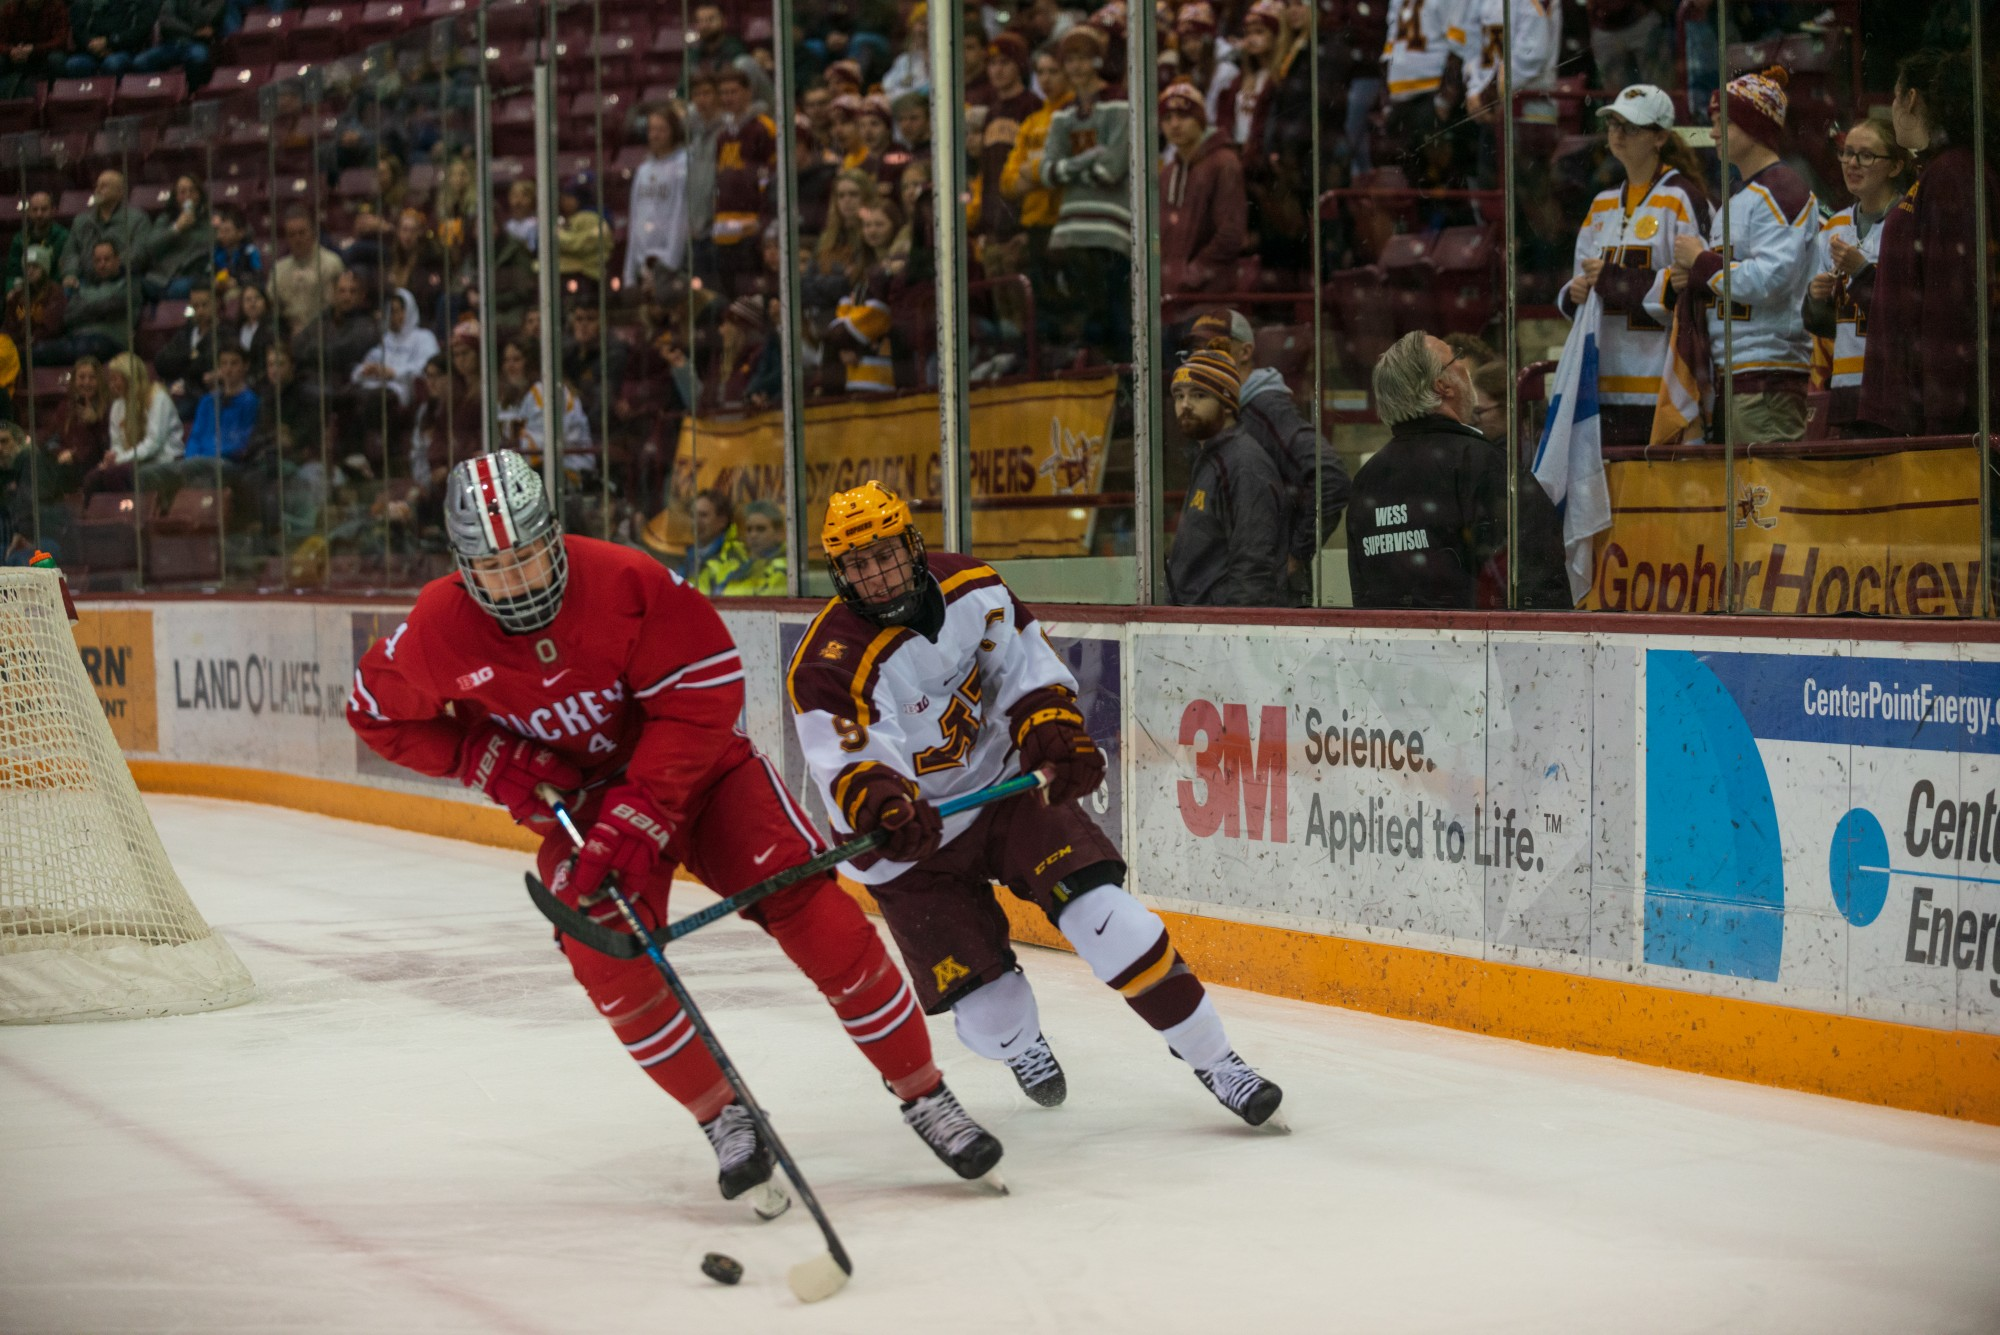 Gophers Forward Sammy Walker pursues a defender at 3M Arena at Mariucci on Friday, Jan. 24, 2020. The Gophers ended the night with a 6-3 victory over Ohio State.